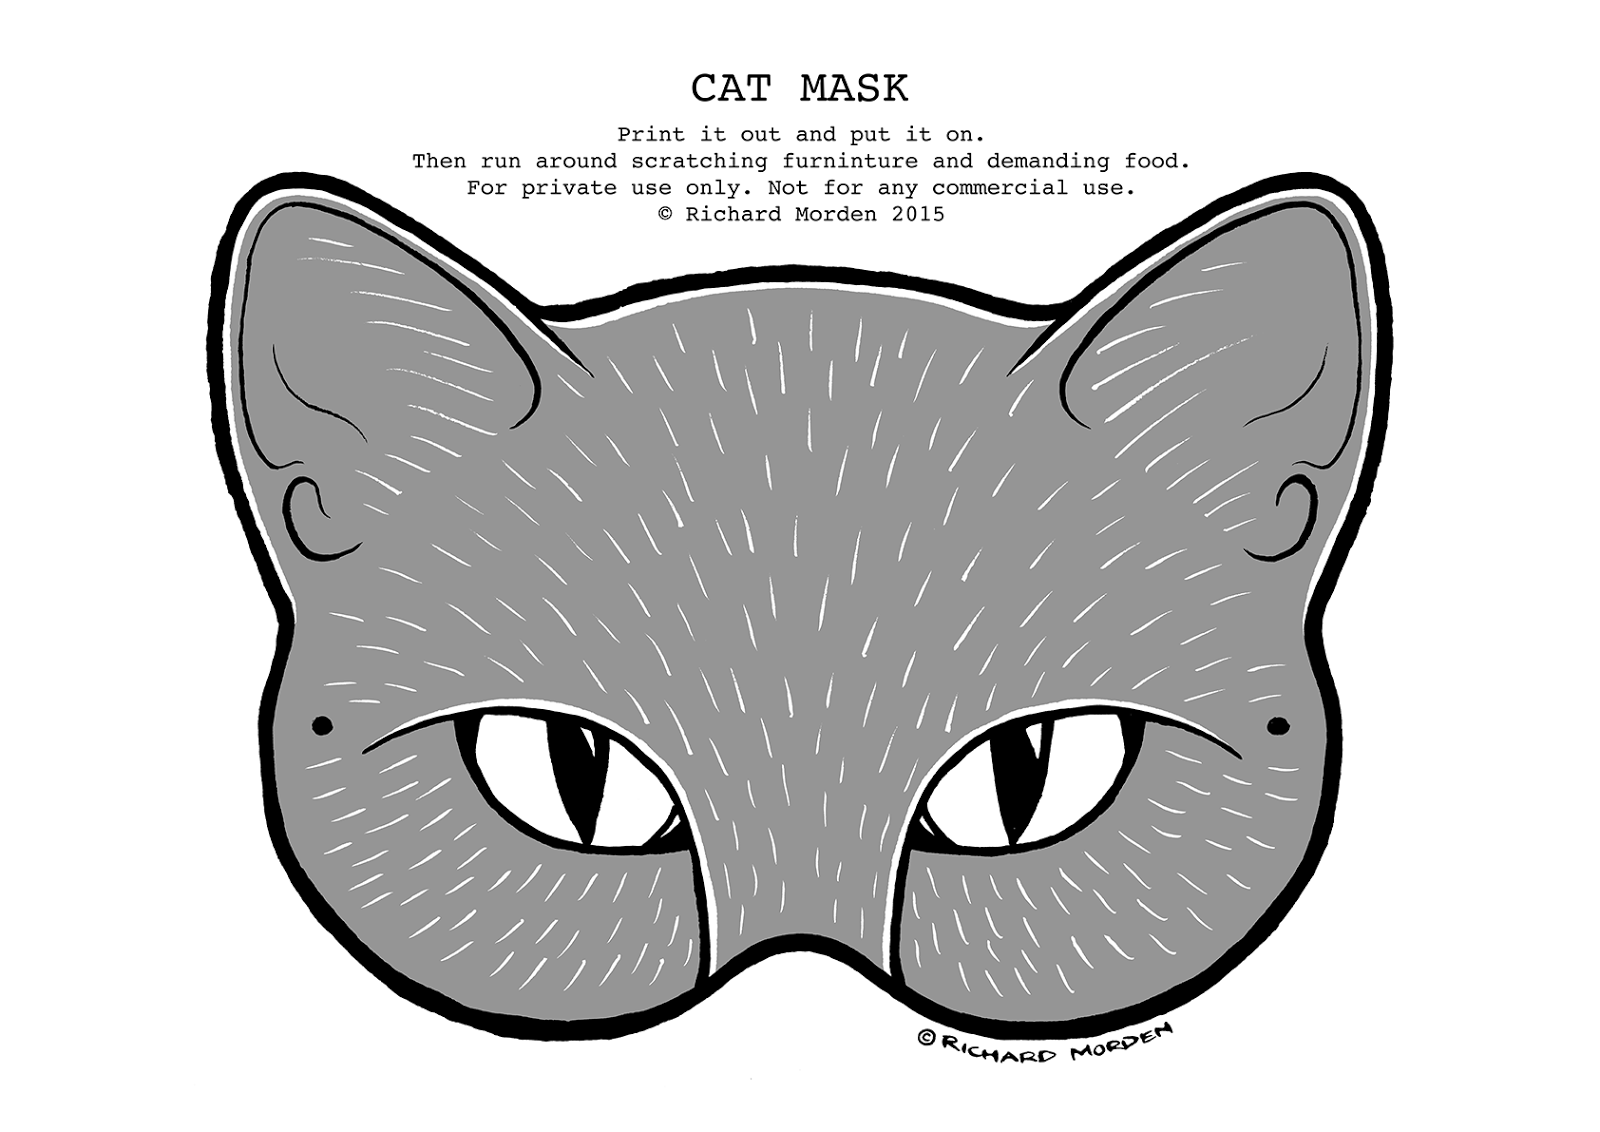 How To Make An Easy Origami Cat Face - Folding Instructions ... | 1132x1600